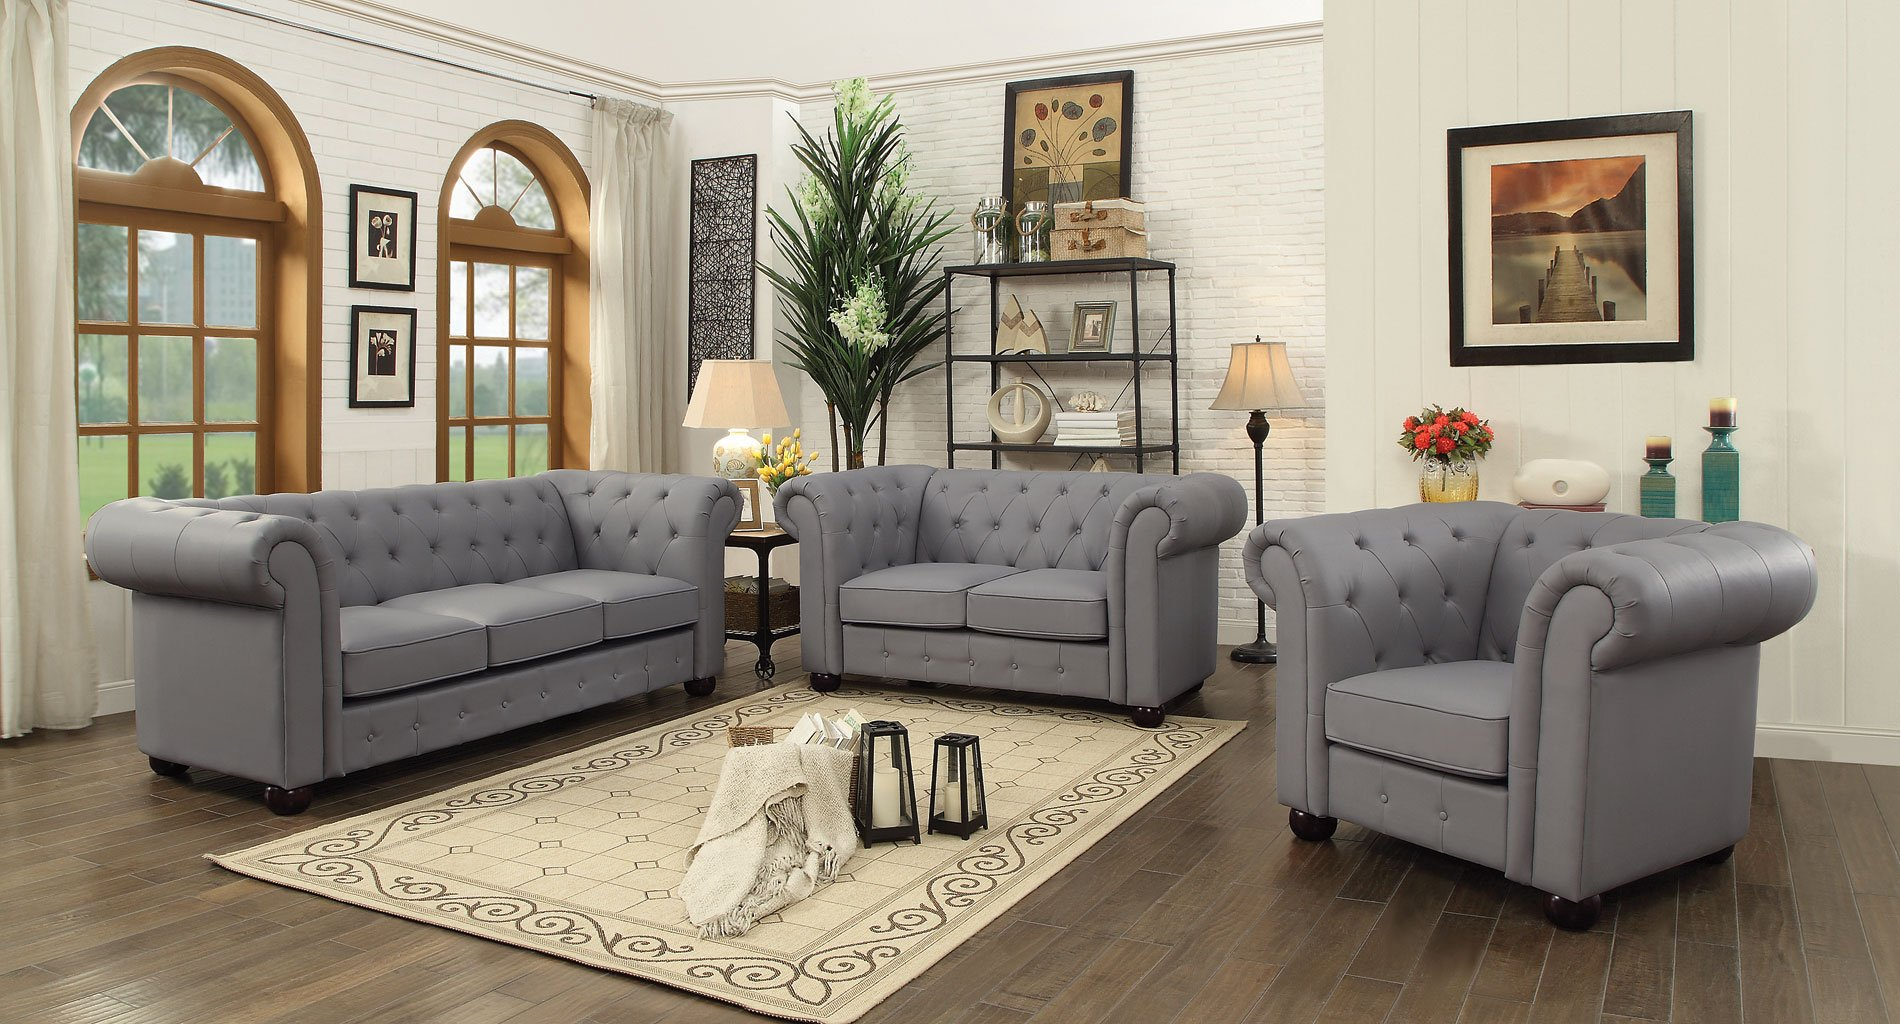 G491 Tufted Living Room Set (Gray) By Glory Furniture